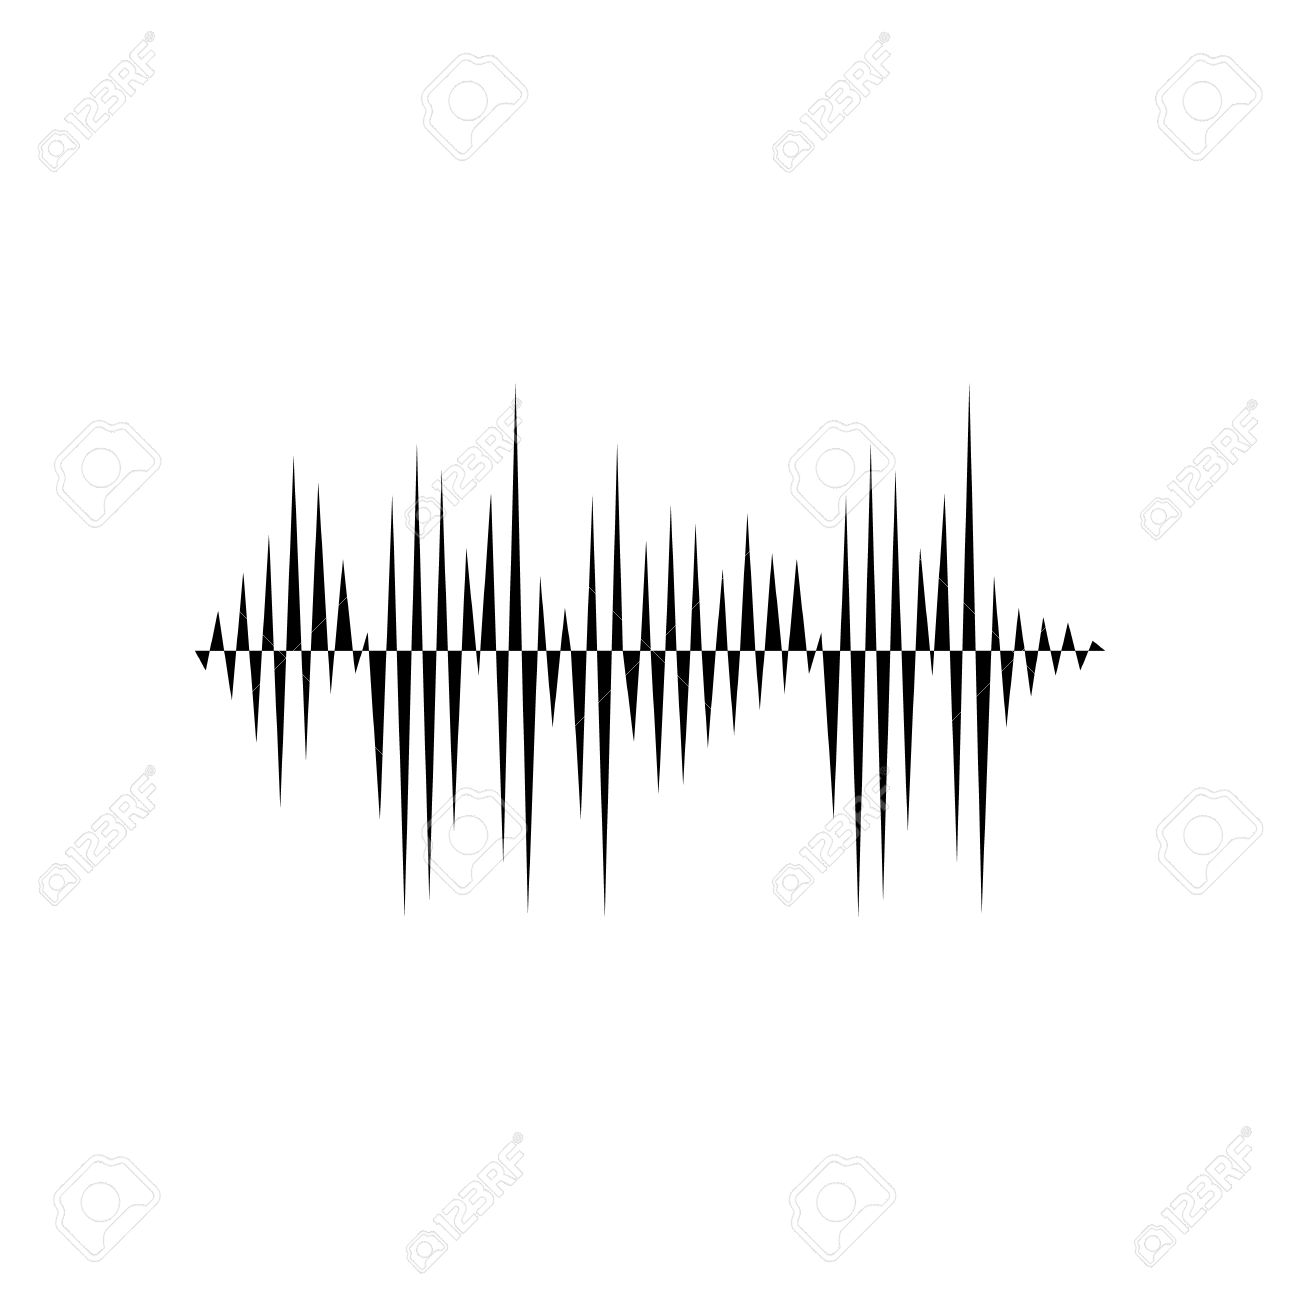 sound or audio wave isolated on white background royalty free